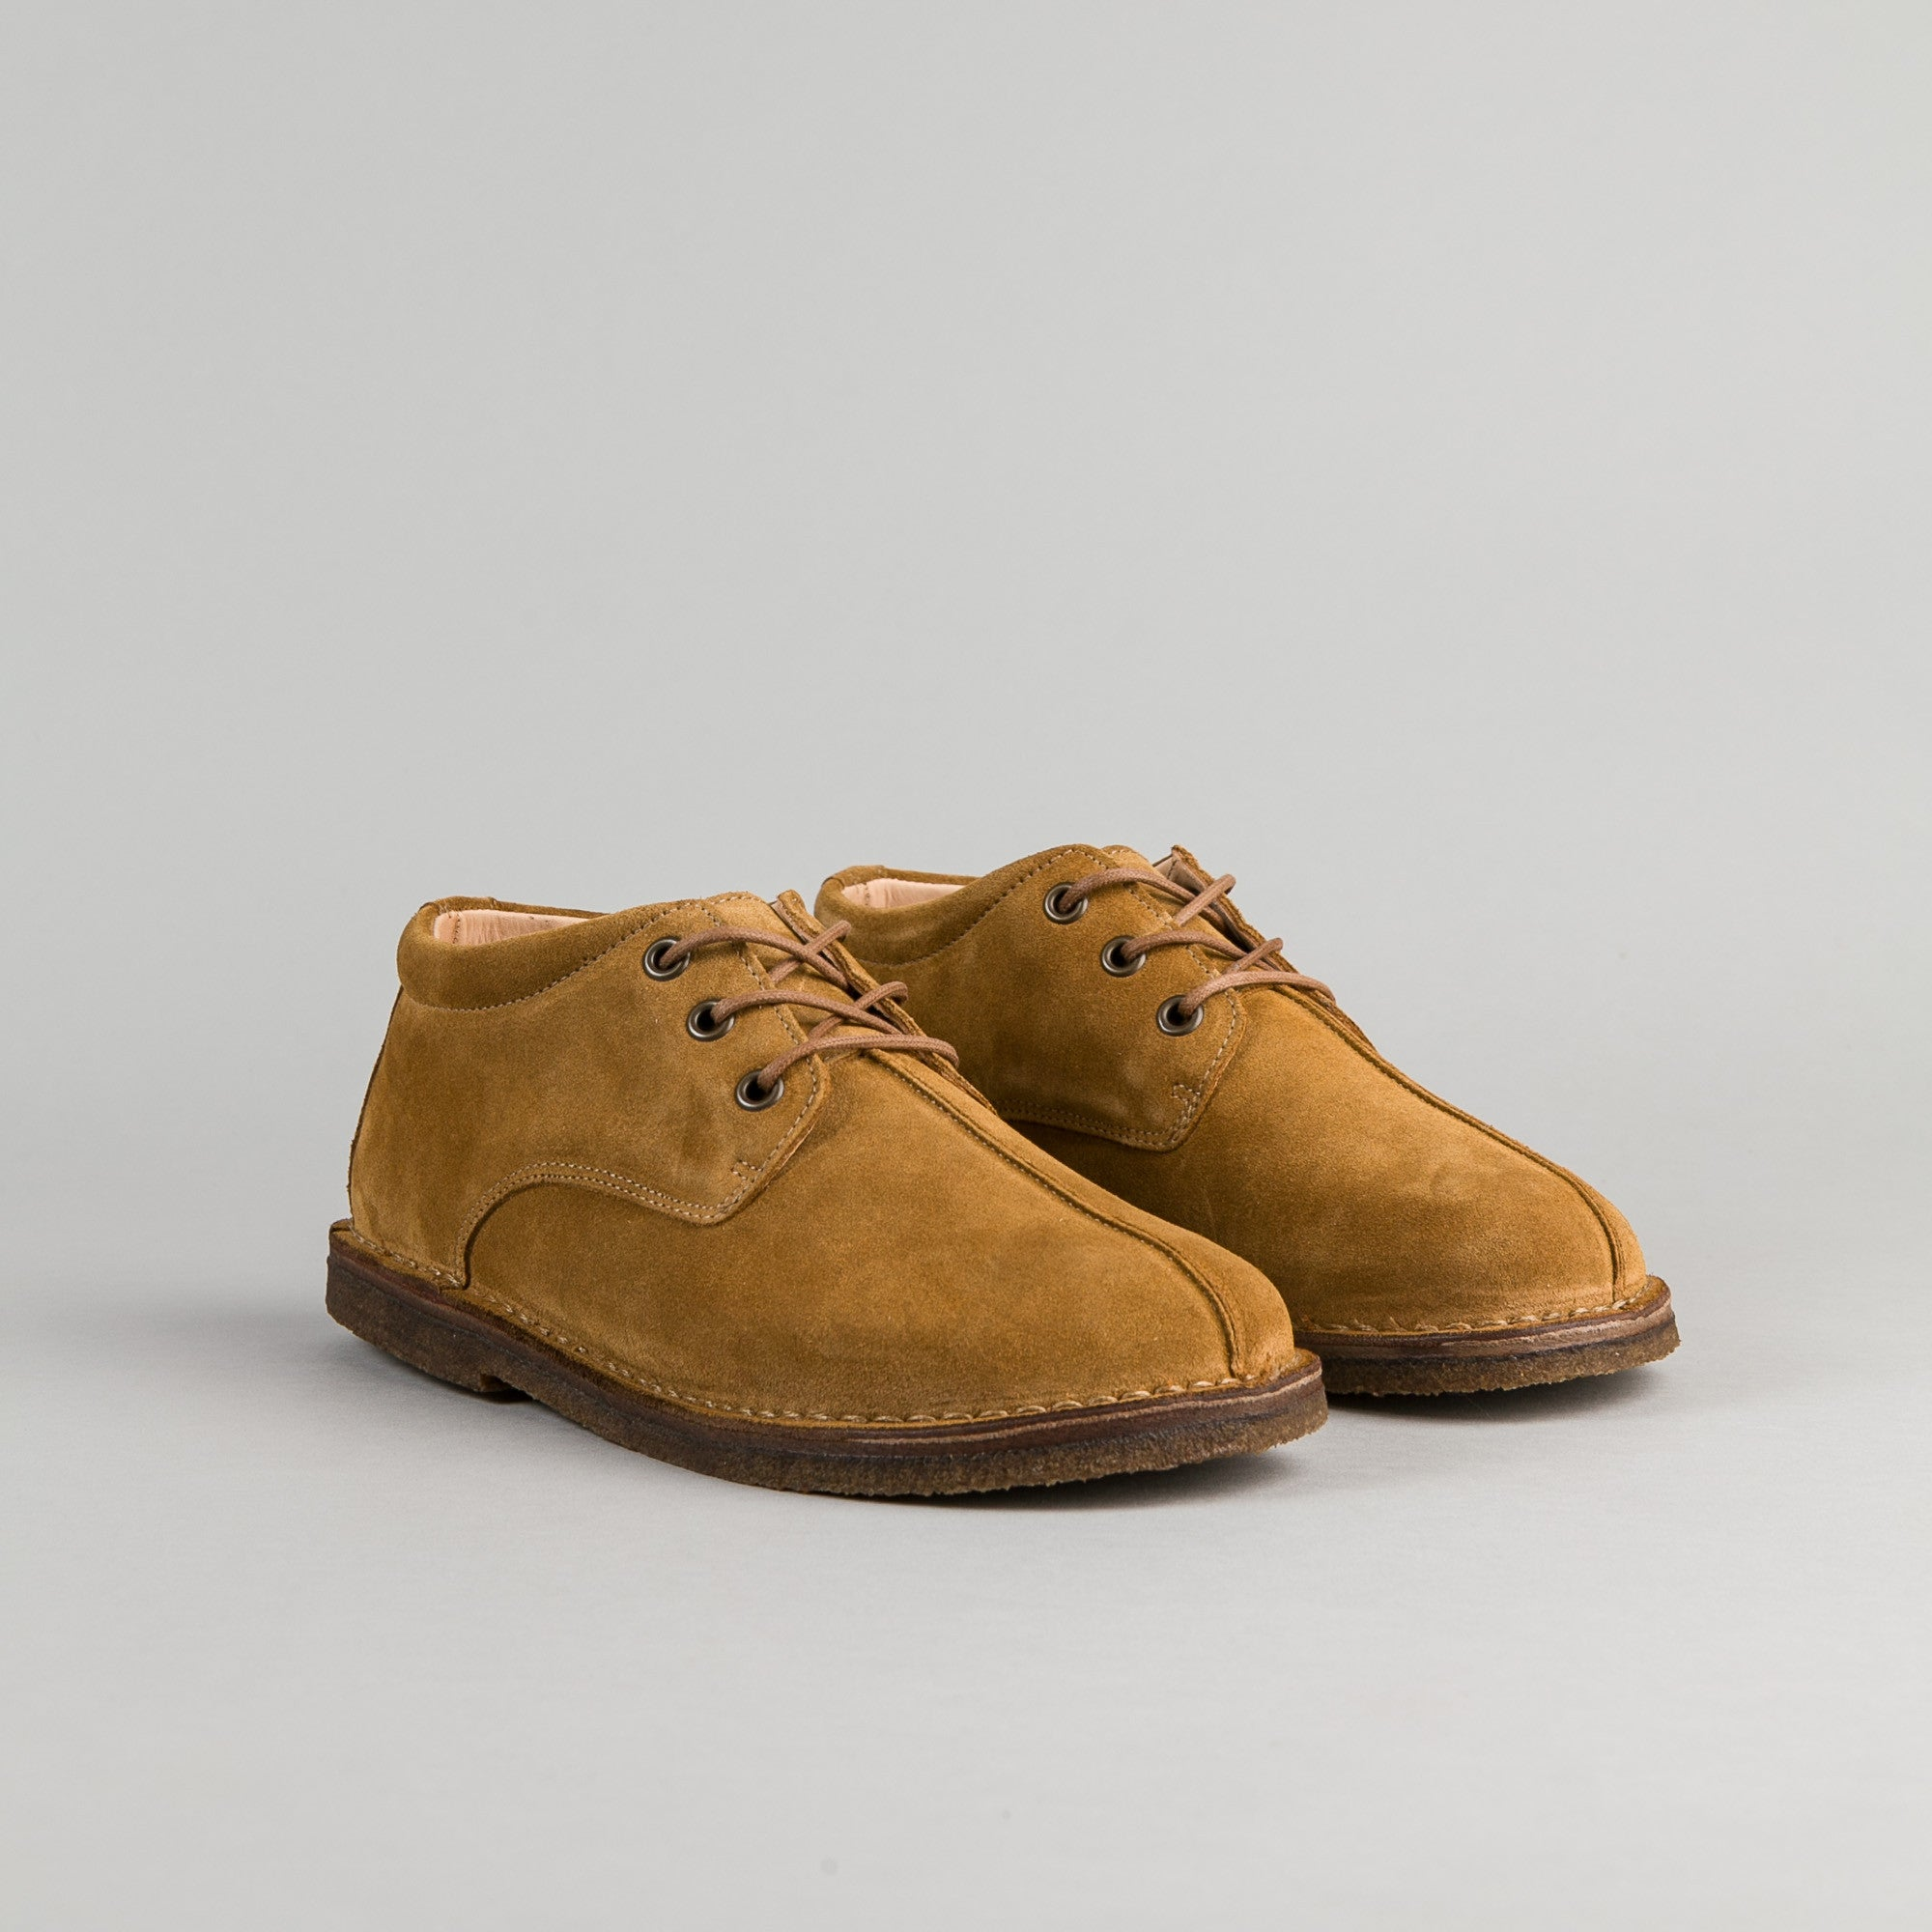 Astorflex Countryflex Shoes - Whiskey